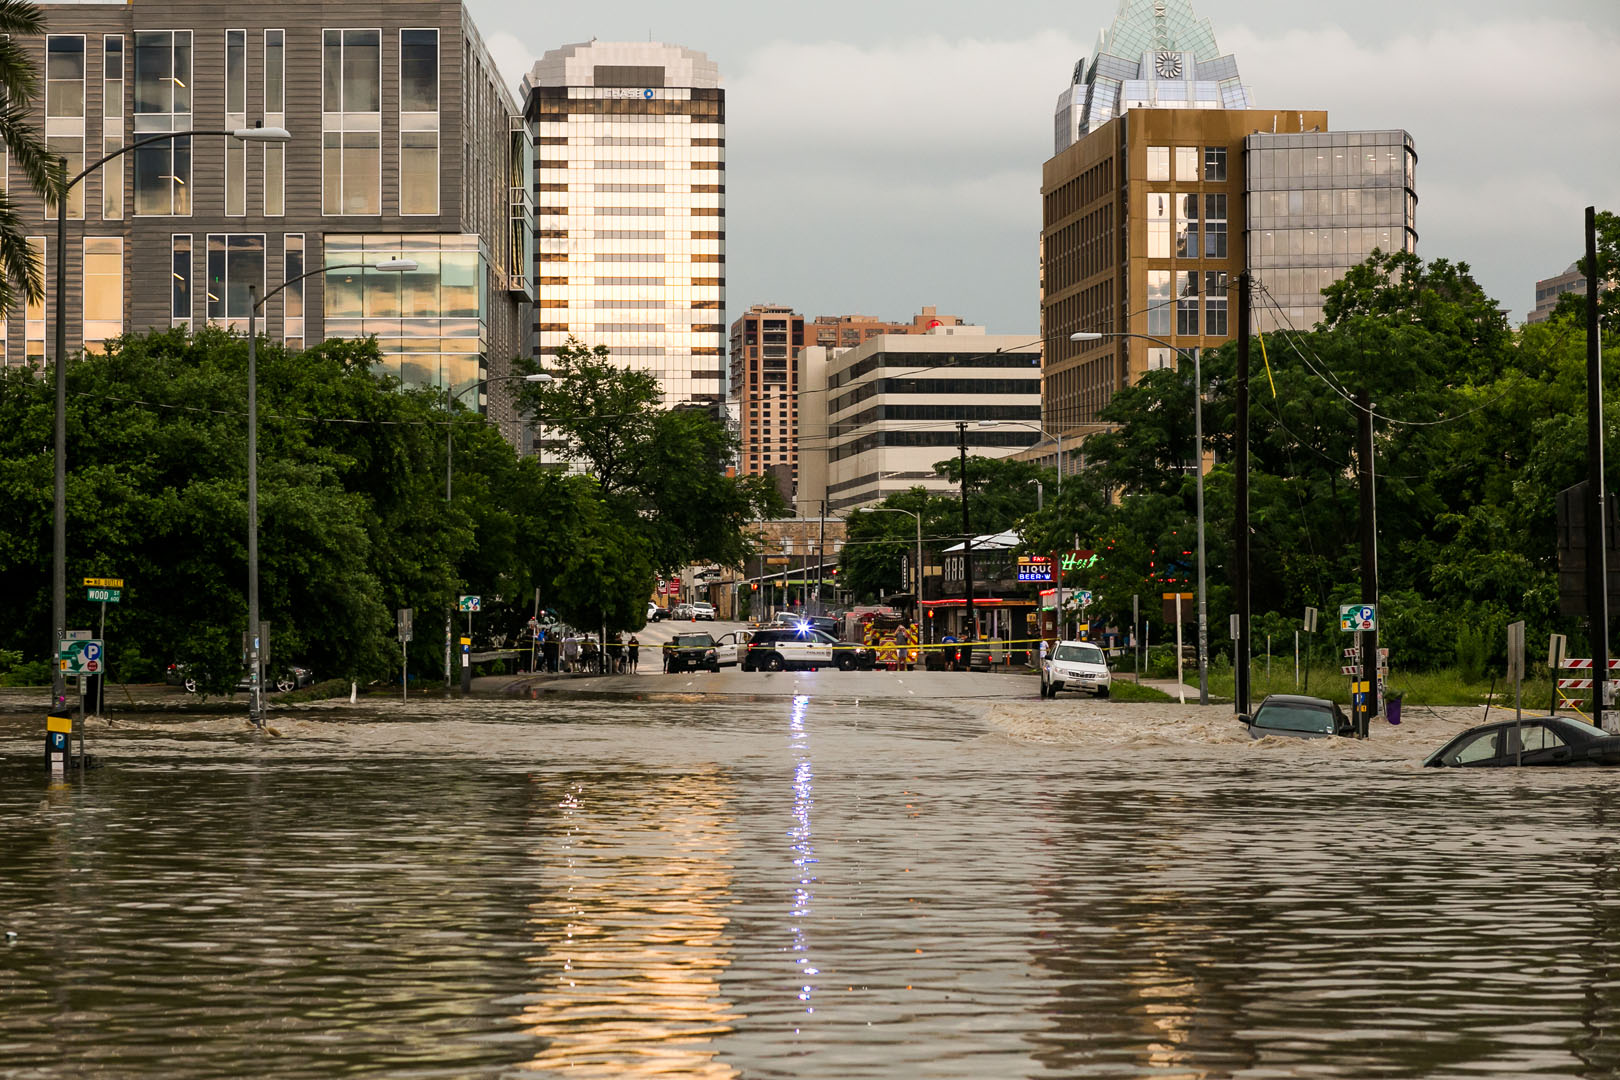 AUSTIN, TX - MAY 25:   Parts of the city are shown inundated after days of heavy rain on May 25, 2015 in Austin, Texas. Texas Gov. Greg Abbott toured the damage zone where one person is confirmed dead and at least 12 others missing in flooding along the Rio Blanco, which reports say rose as much as 40 feet in places, caused by more than 10 inches of rain over a four-day period. The governor earlier declared a state of emergency in 24 Texas counties.  (Photo by Drew Anthony Smith/Getty Images)